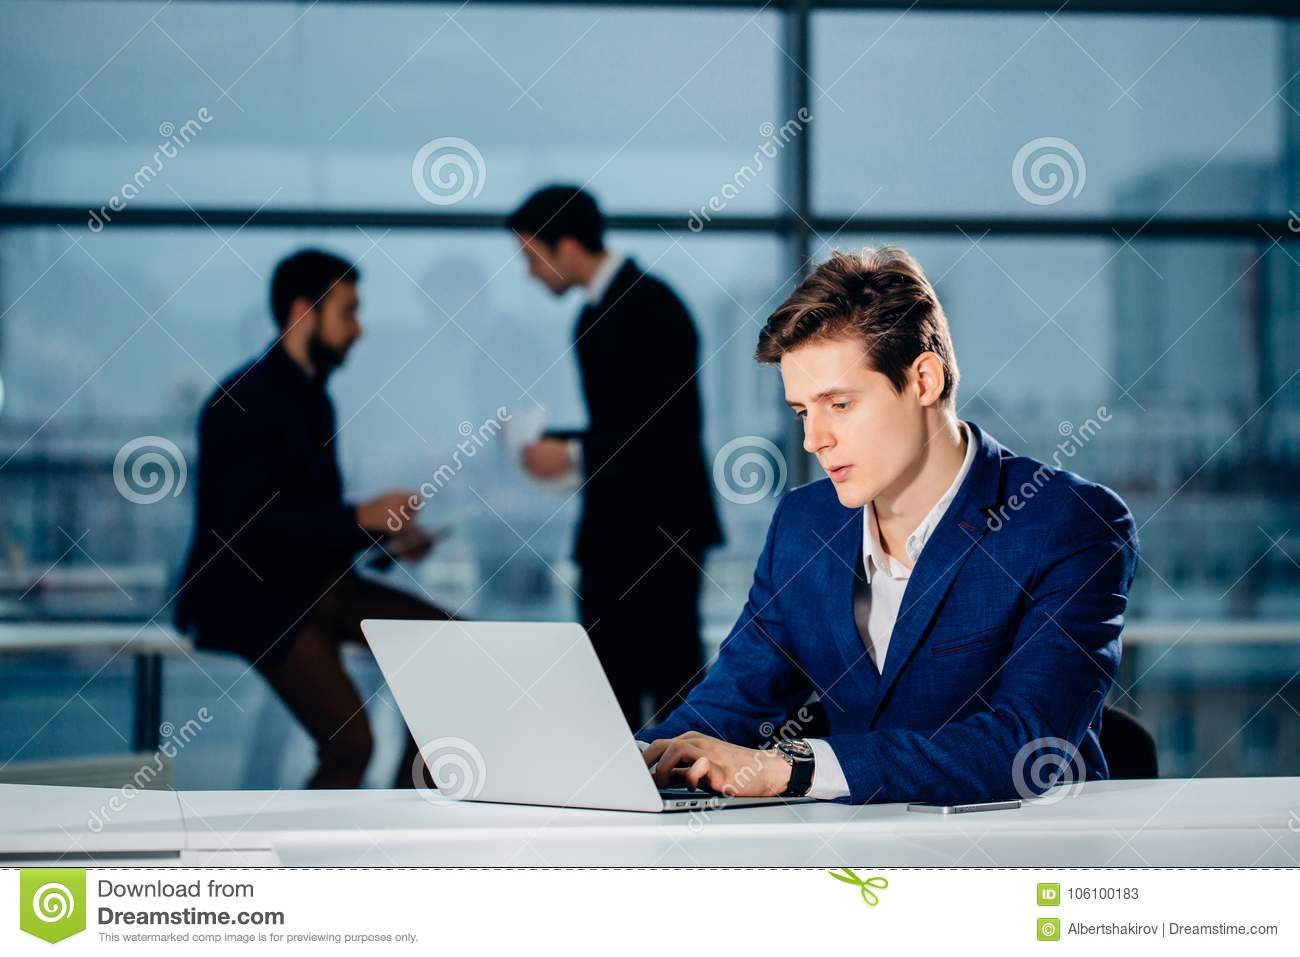 Working On Computer Laptop Online, Businessman, Person Using